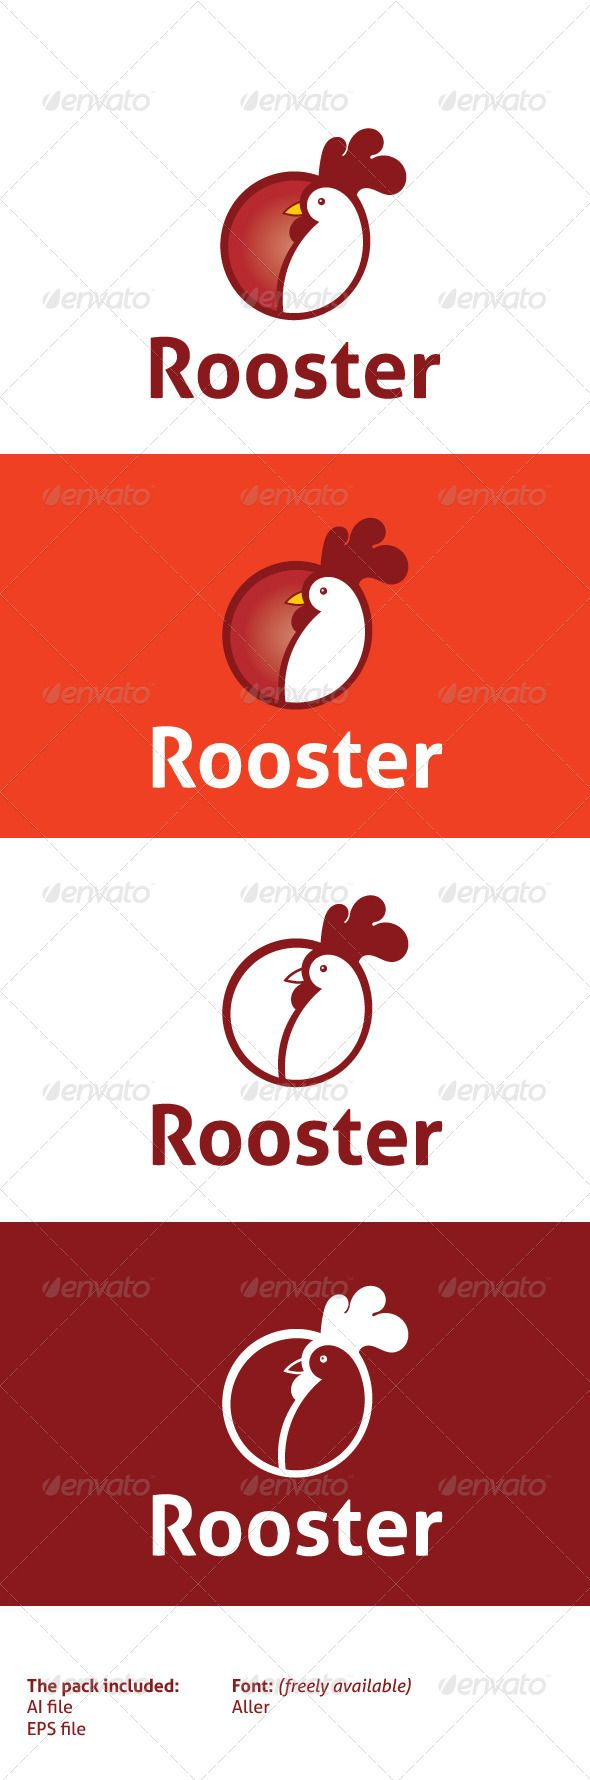 Rooster Circle Logo Design Logo Templates Rooster